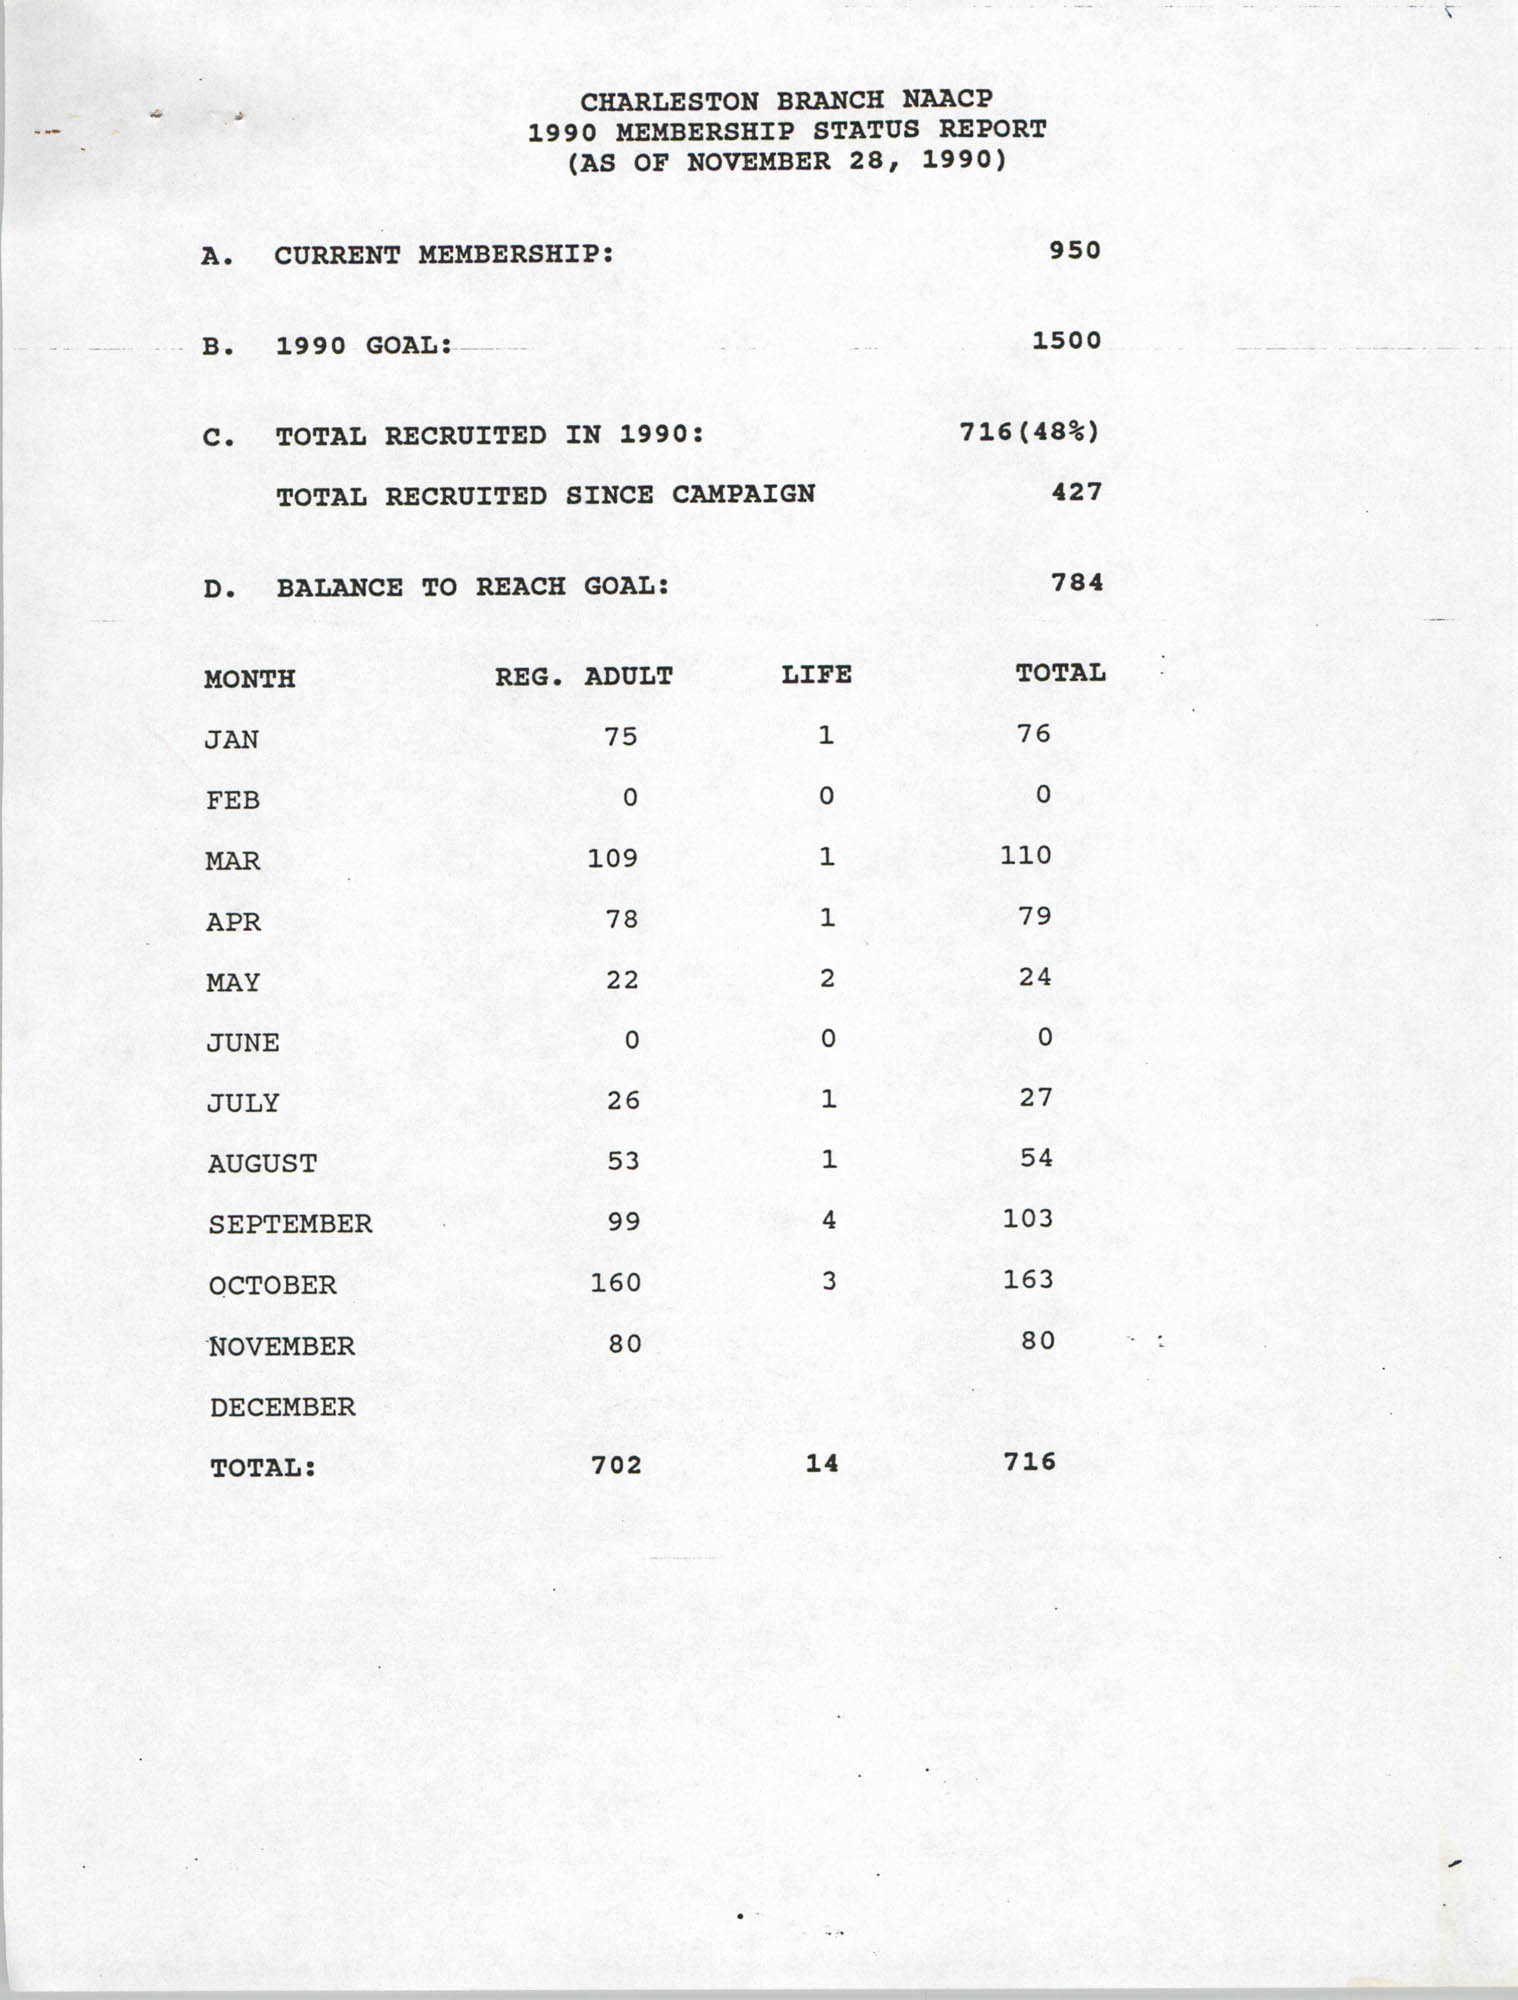 Membership Status Report, National Association for the Advancement of Colored People, November 28, 1990